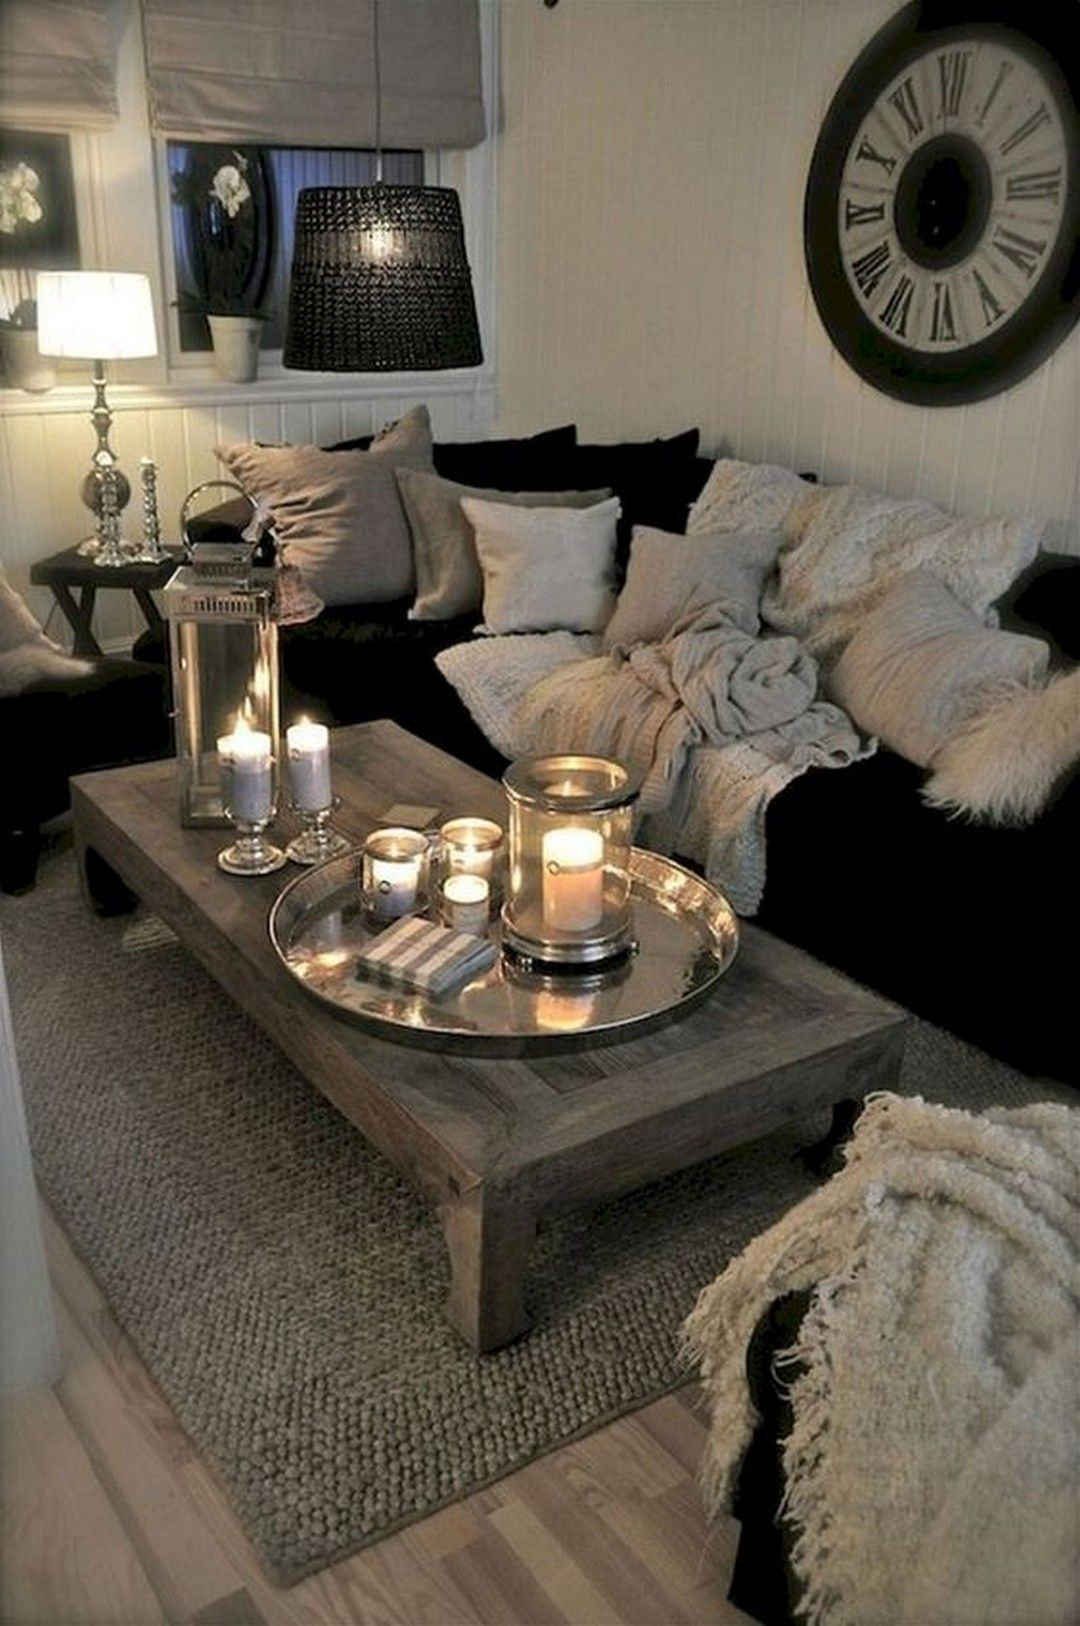 9 Elegant Apartment Living Room Home Decor Ideas to Copy Easily – Famous Last Words